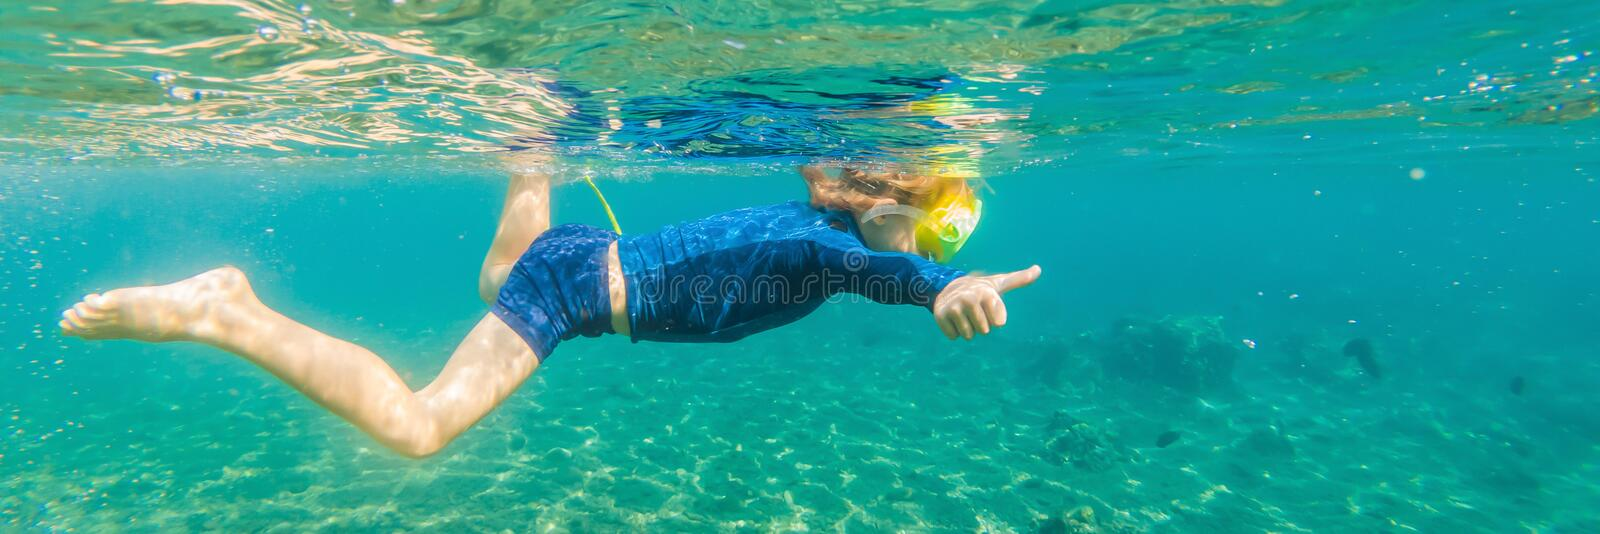 Happy family - active kid in snorkeling mask dive underwater, see tropical fish in coral reef sea pool. Travel adventure royalty free stock images